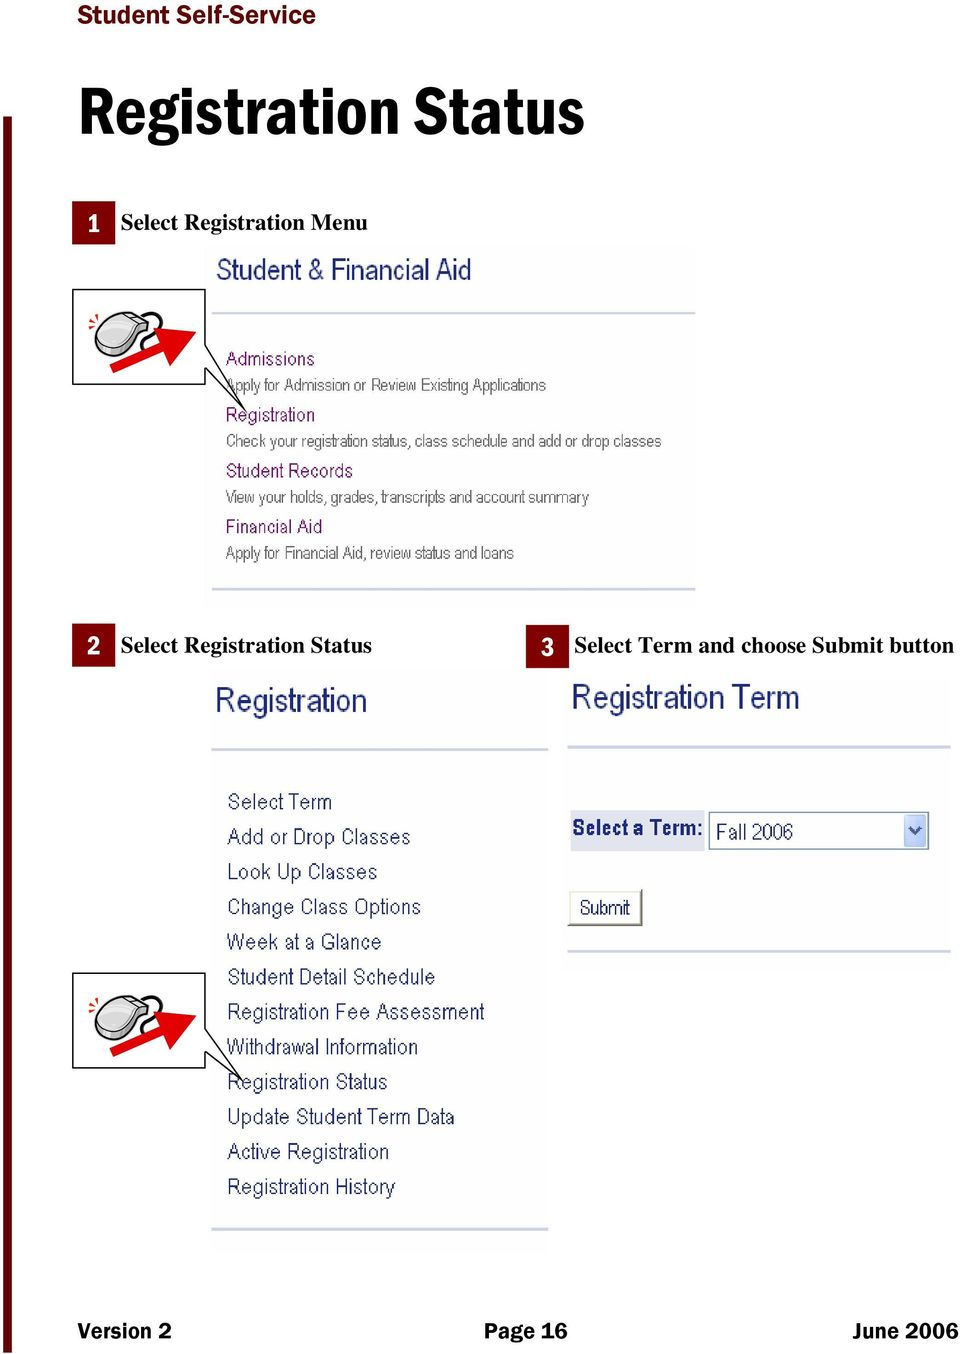 Registration Status 3 Select Term